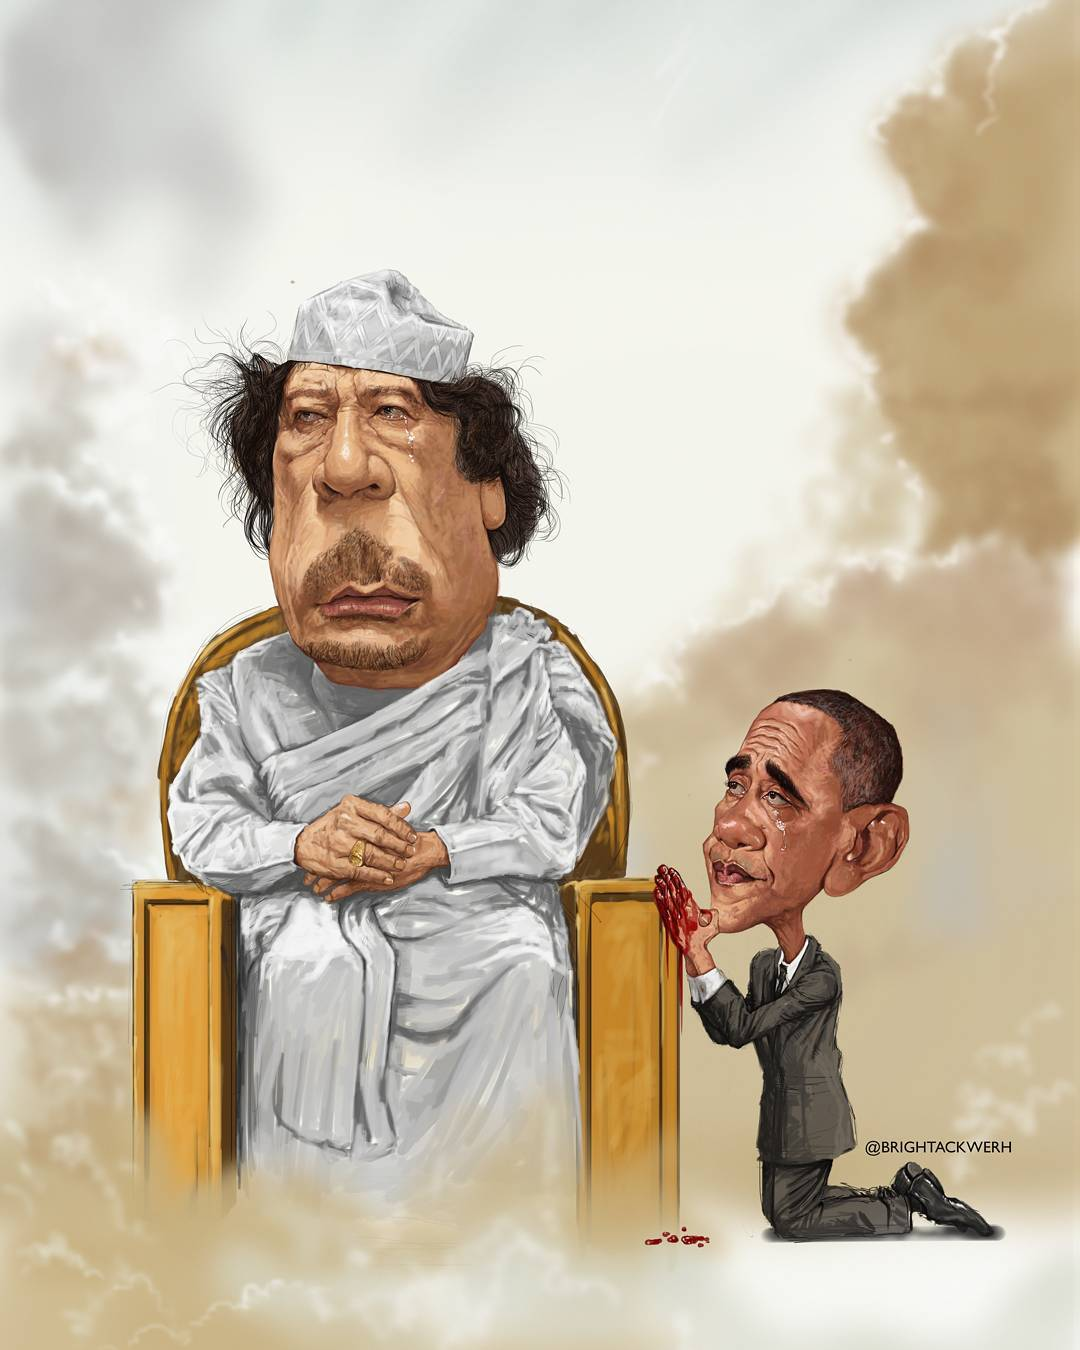 The Son's Tear from Bright Ackwerh's Very Very Graphic Series. ARt shows Barack Obama pleading for mercy from a crying Muamar al Ghadaffi who sits on a throne in what could be interpreted as heaven.